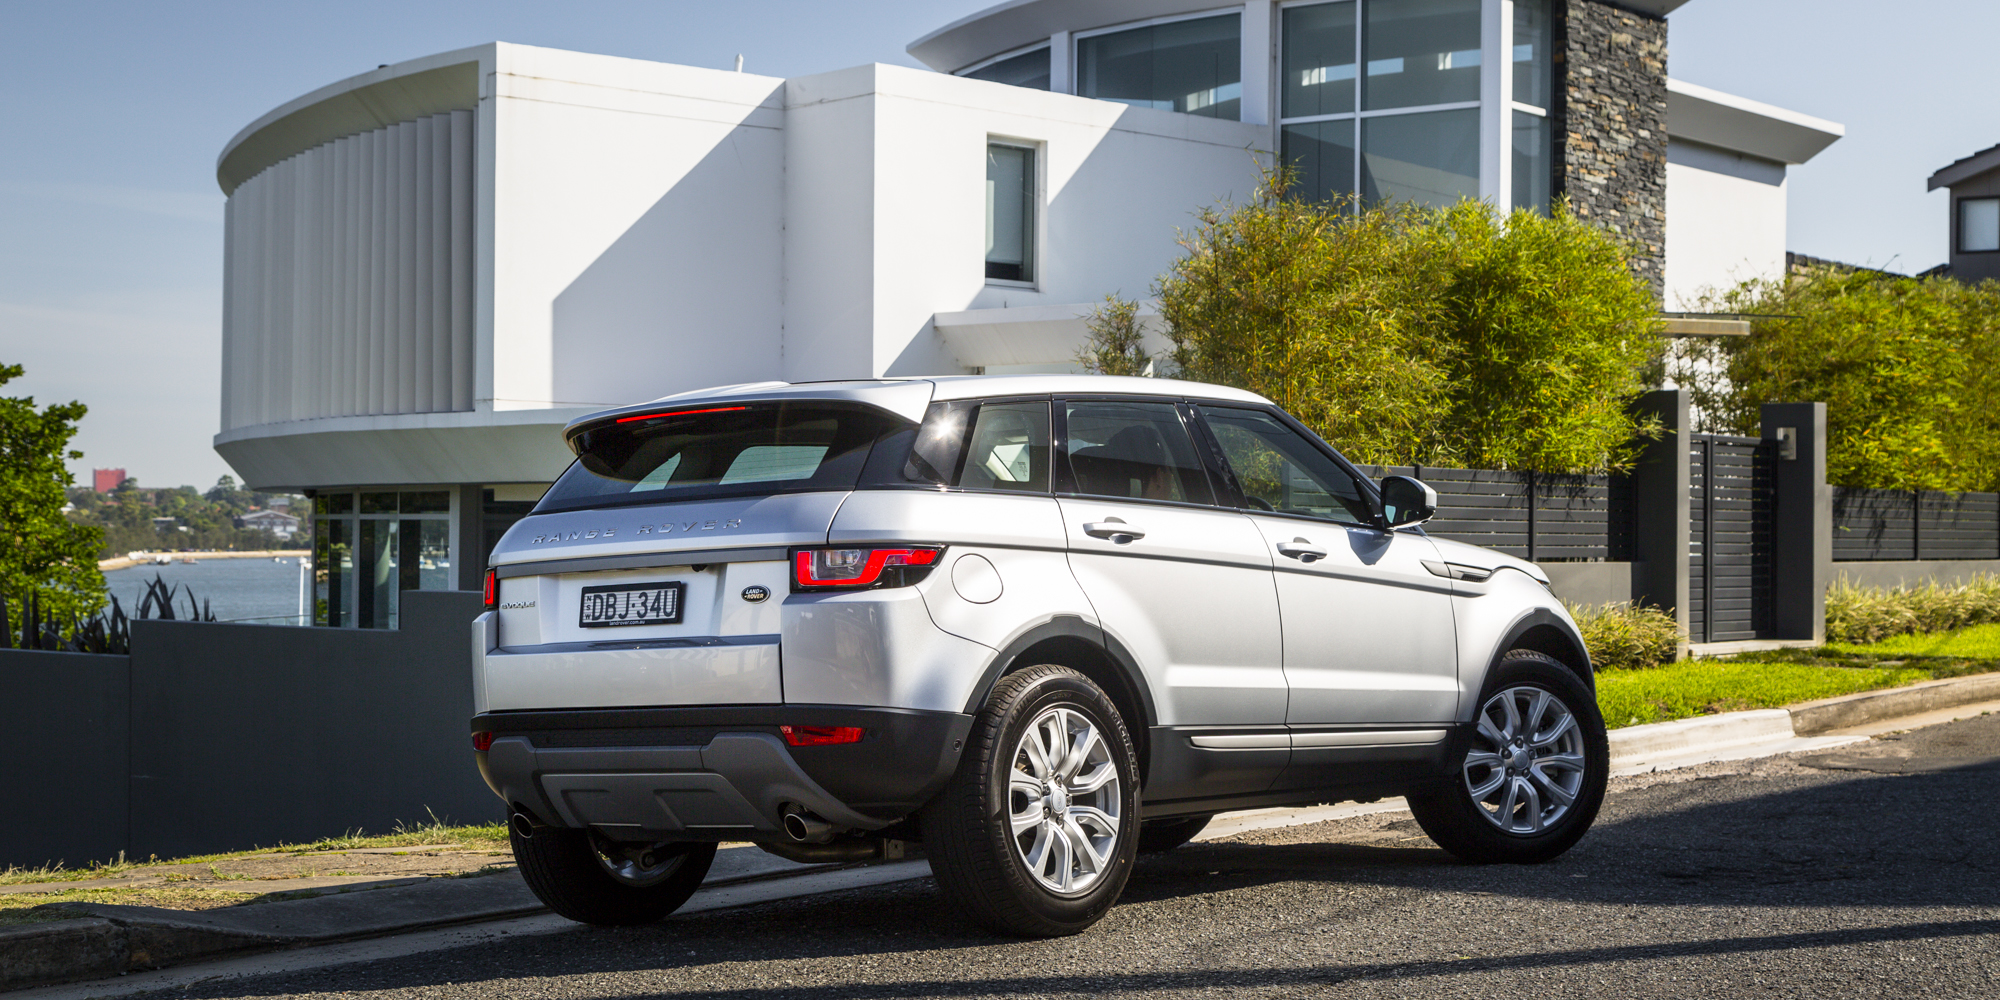 Lastest 2016 Range Rover Evoque Review  CarAdvice